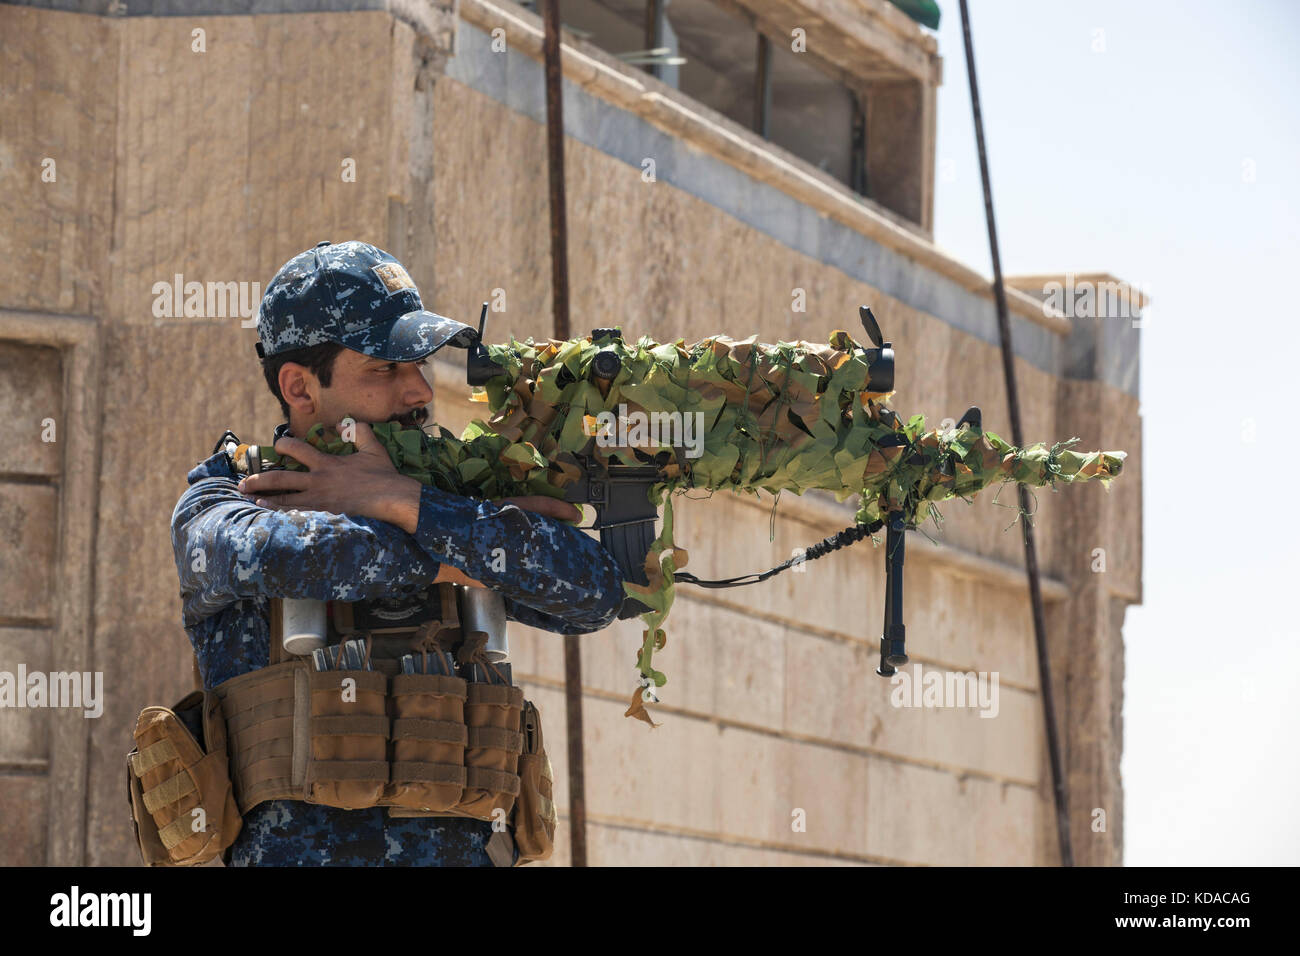 An Iraqi Federal Police sniper looks through the scope of his rifle on the roof of a patrol base June 29, 2017 in - Stock Image